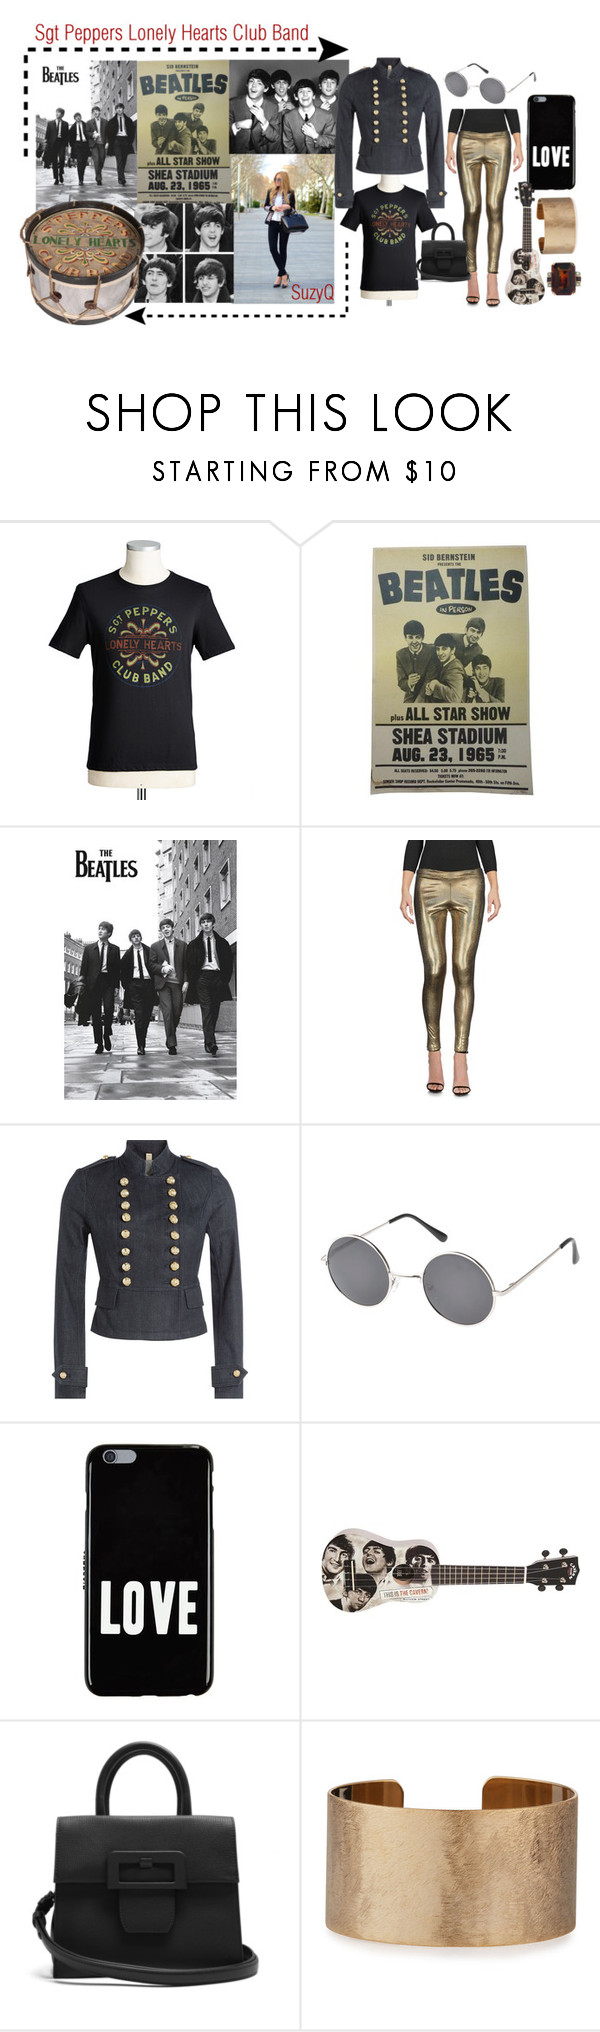 """Sgt Peppers Lonely Hearts Club Band"" by suzettestokes ❤ liked on Polyvore featuring MNML, Andrew Martin, Burberry, Epic, Givenchy, Maison Margiela and Panacea"